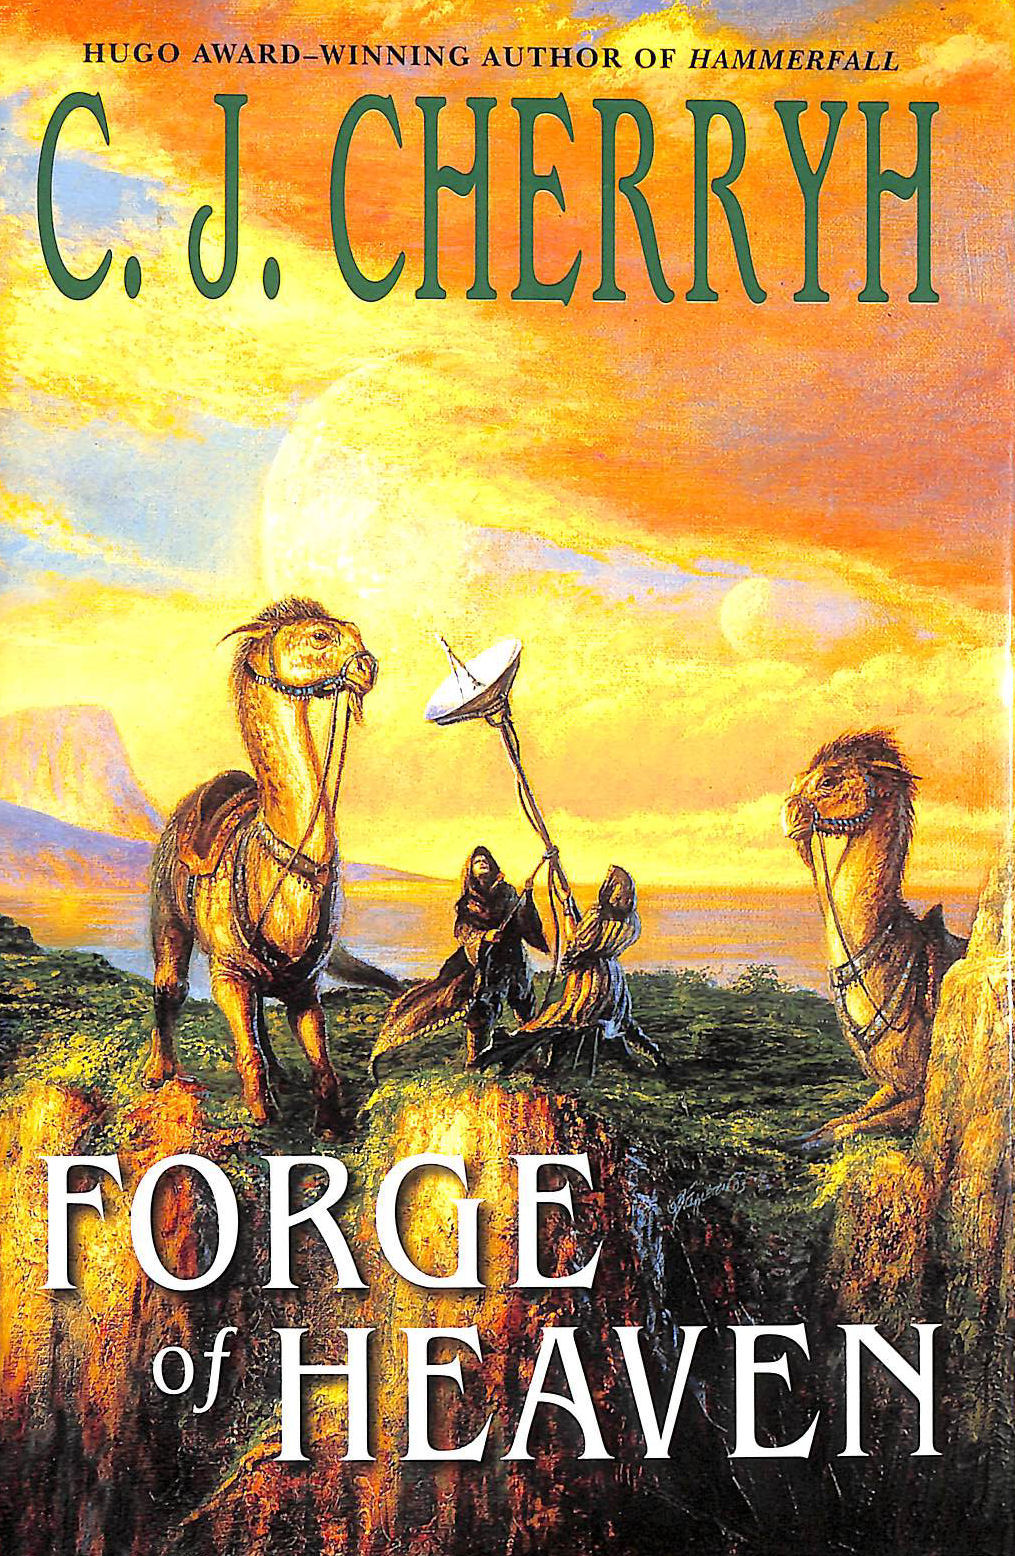 Image for Forge of Heaven (Cherryh, C. J.)